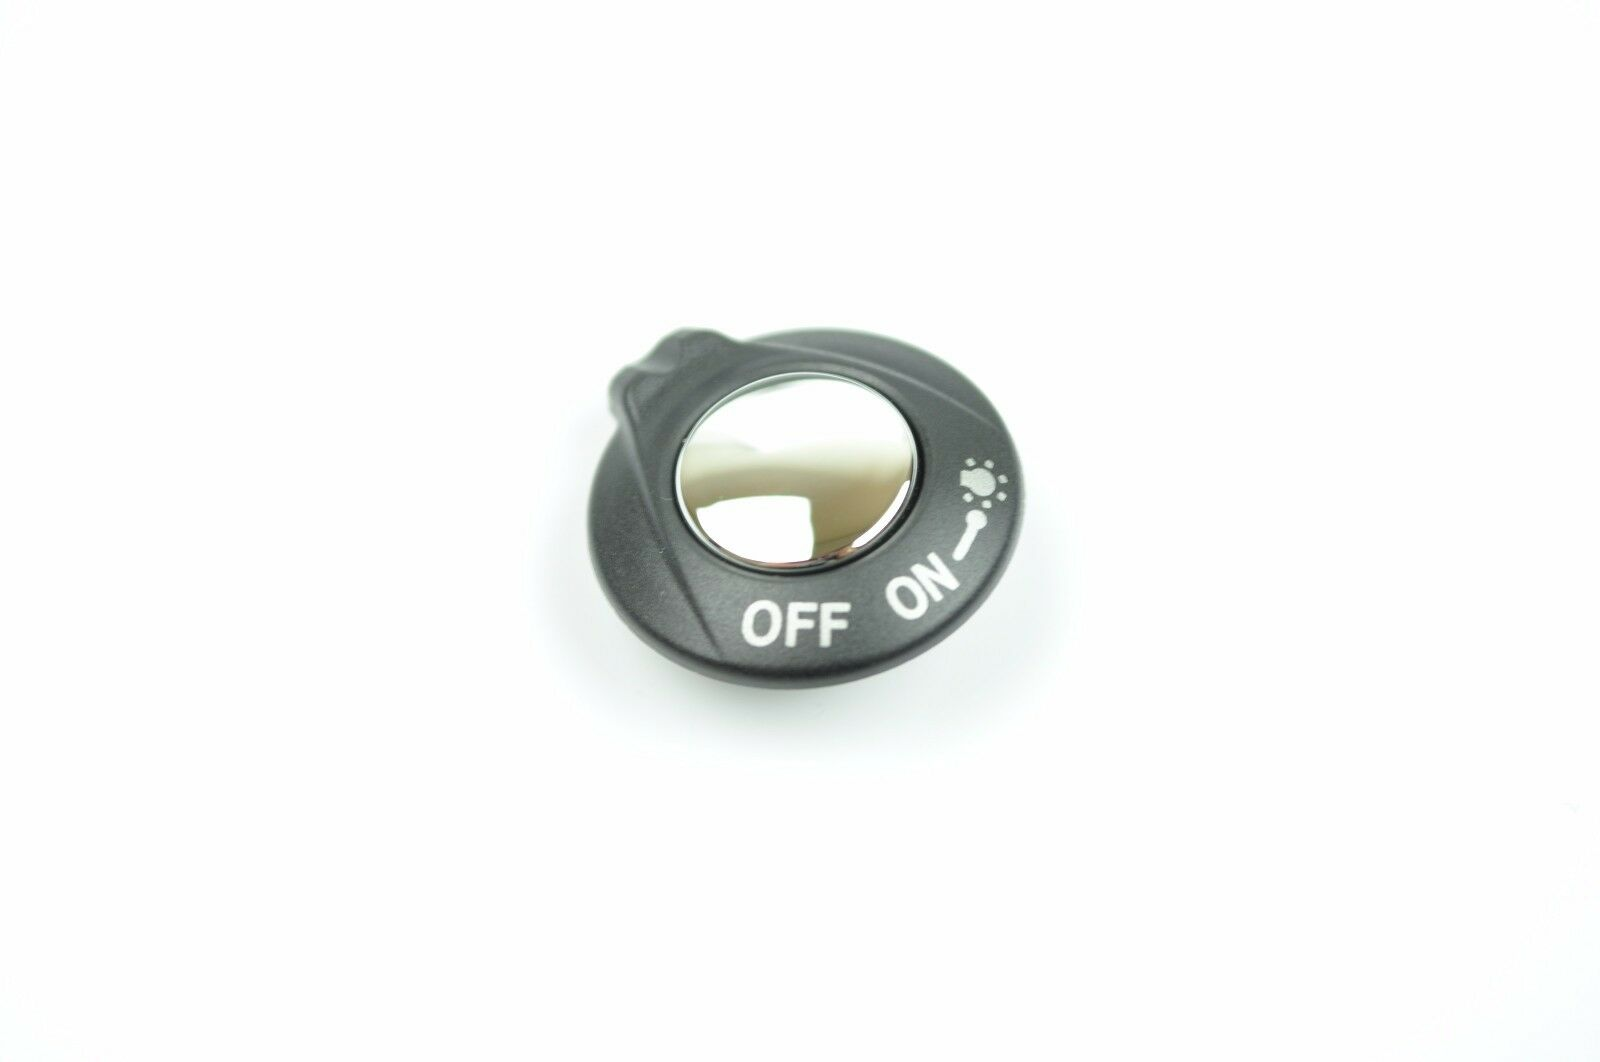 Nikon D90 Shutter Release Button With On/off Mode Replace...